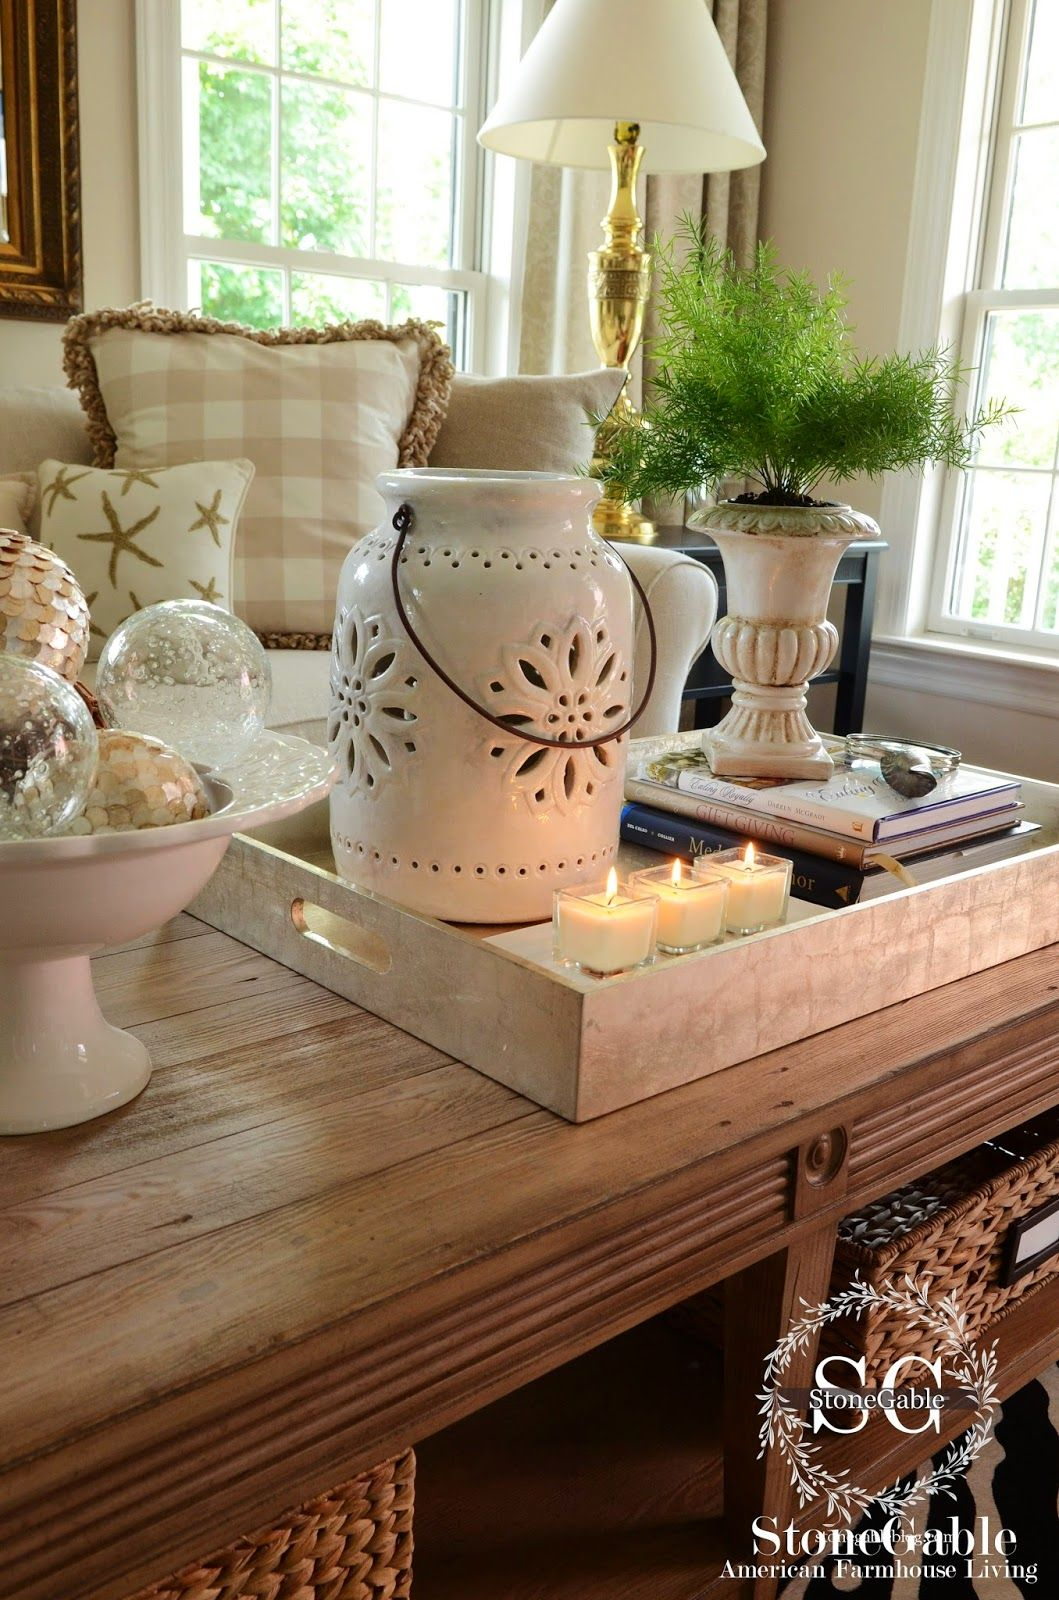 - StoneGable: 5 TIPS TO STYLE A COFFEE TABLE LIKE A PRO Decorating